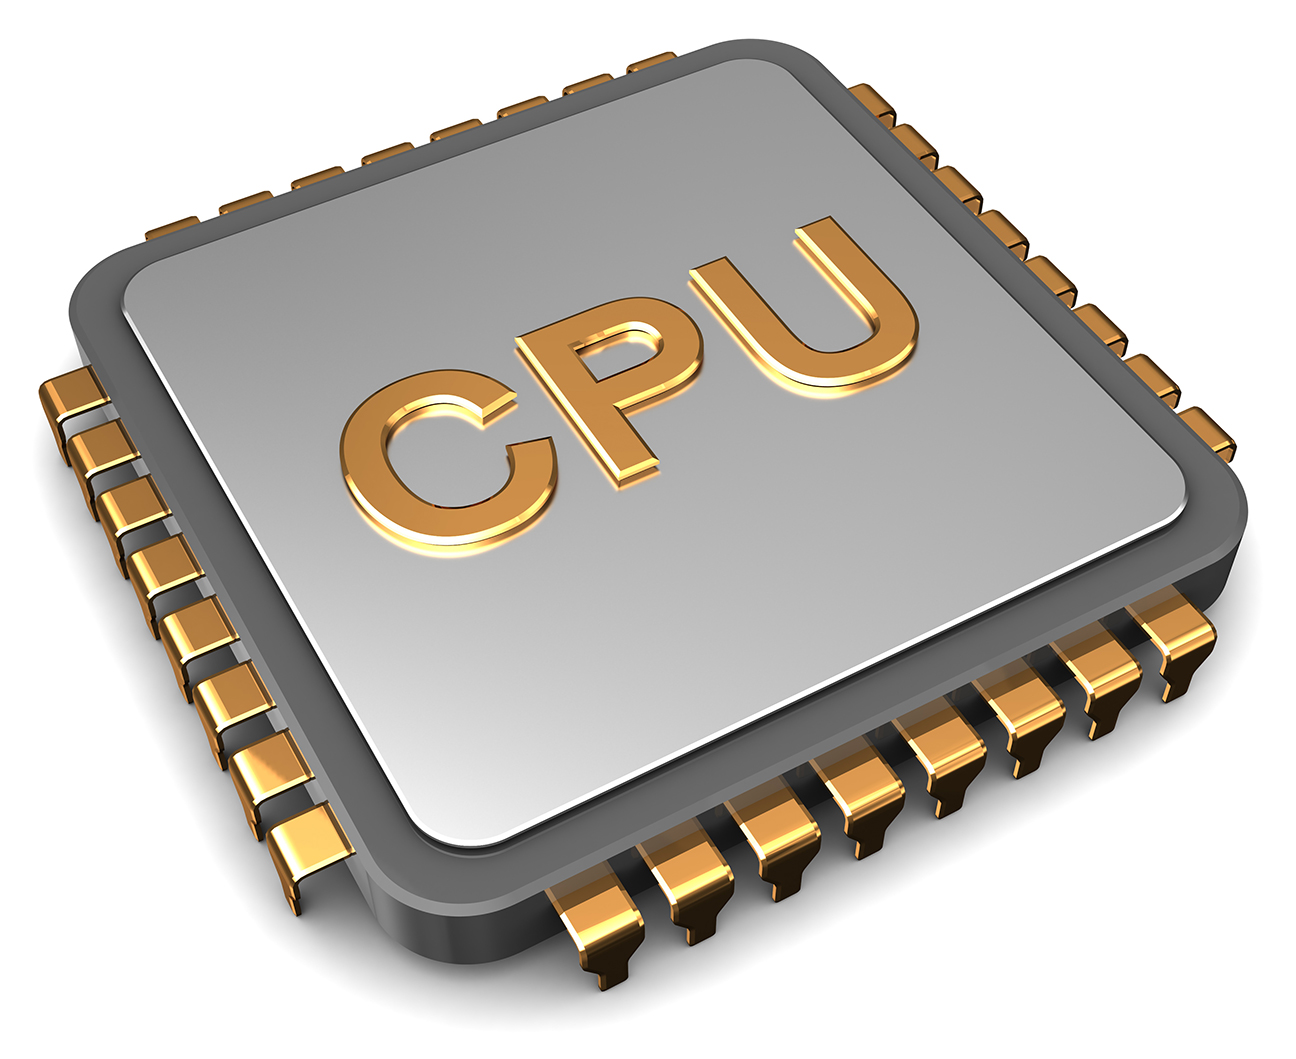 3D Illustration of CPU chip over white background